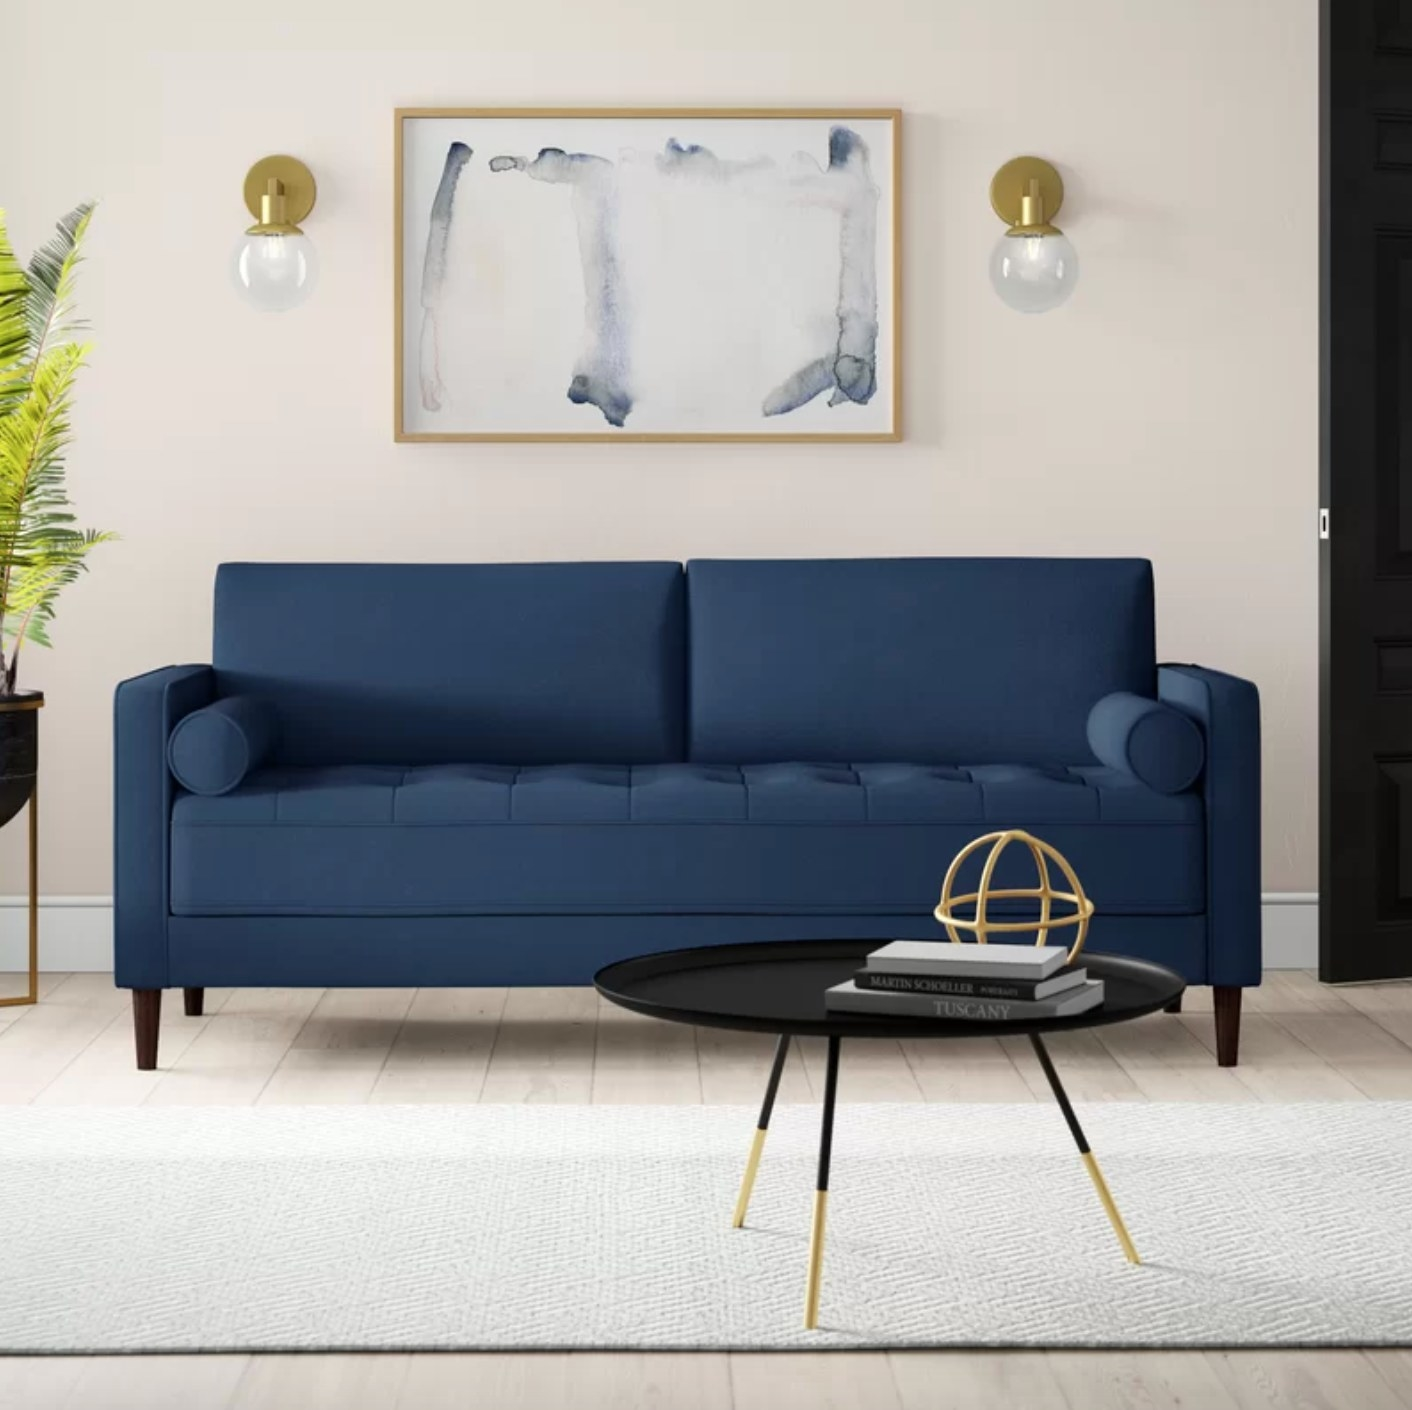 The square arm sofa in navy blue